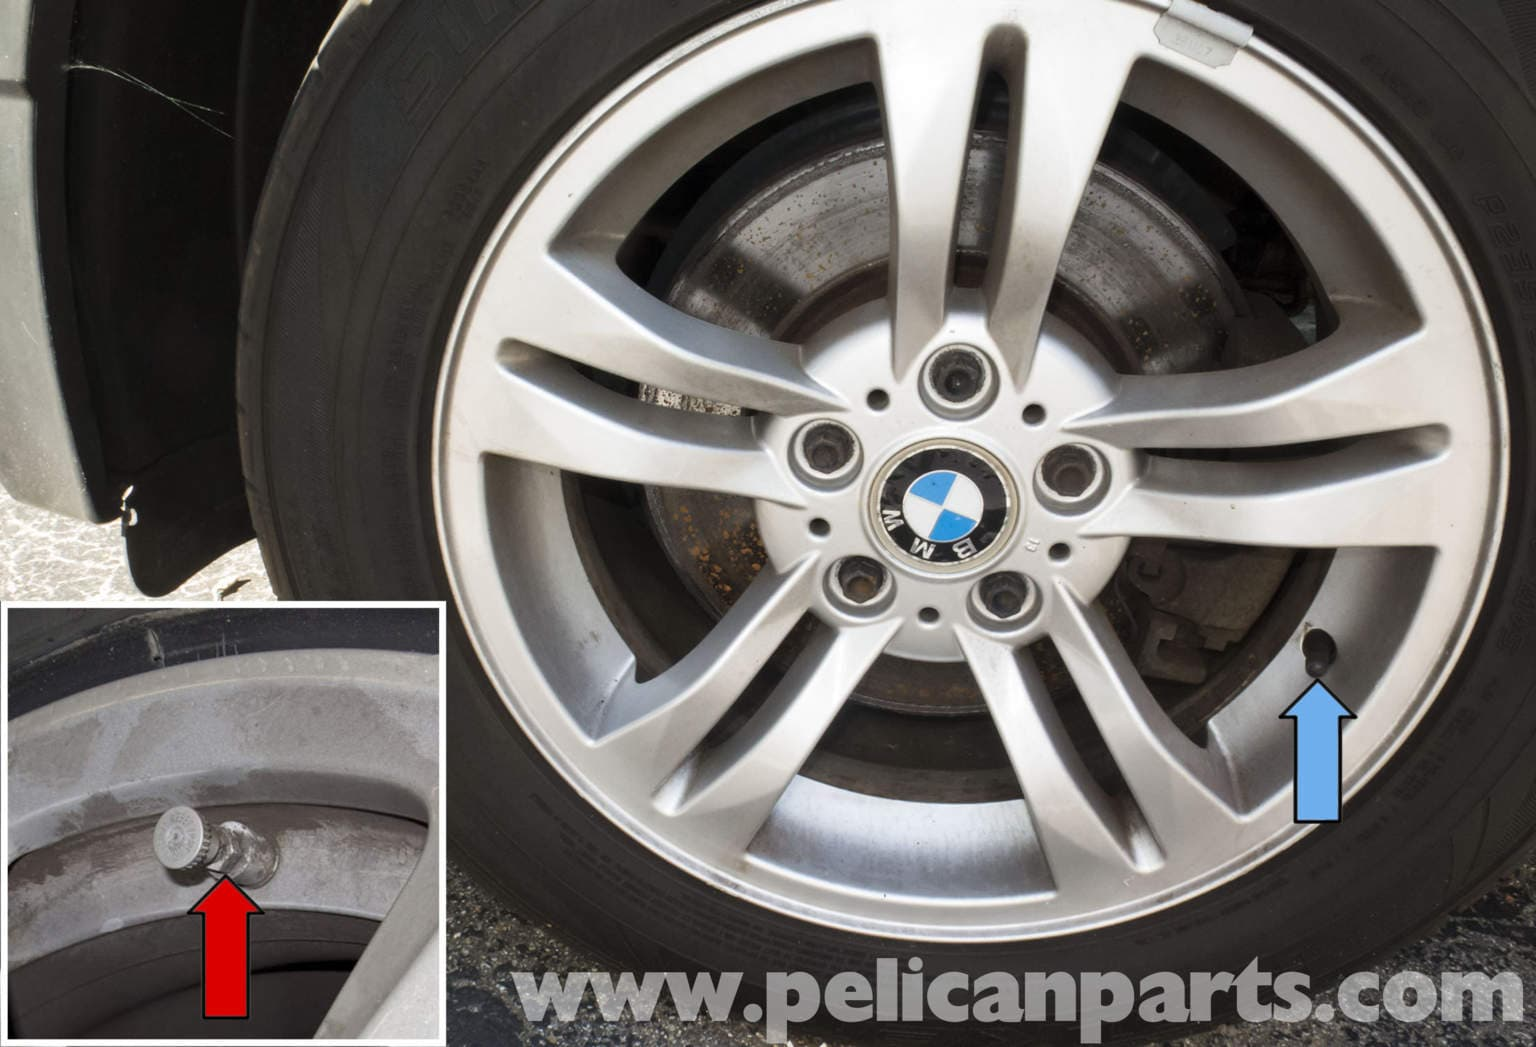 Pelican Parts Technical Article Bmw X3 Tire Pressure Monitoring